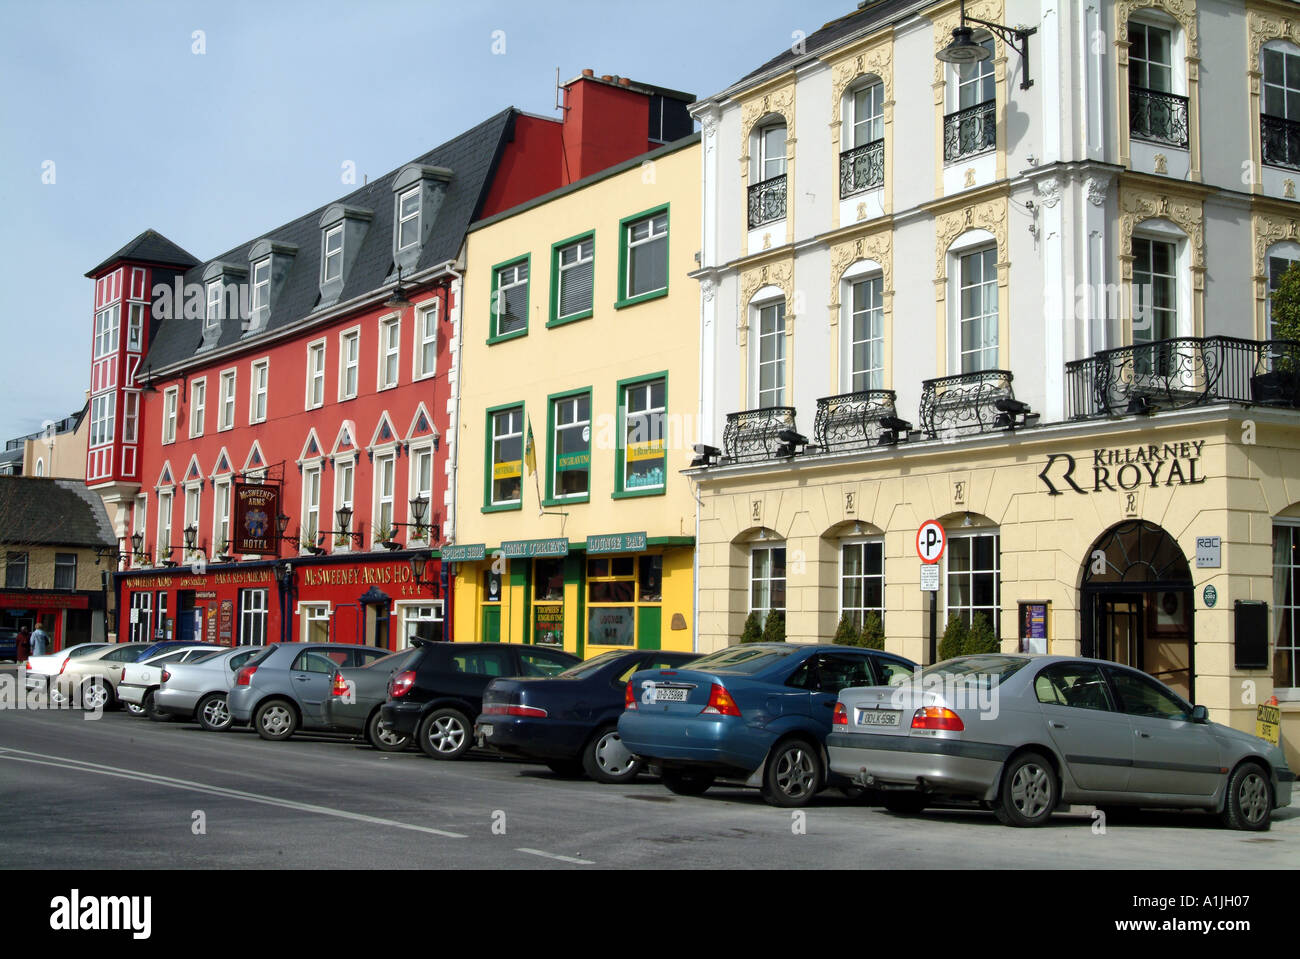 Hotels And Bars In Killarney Town Centre County Kerry Ireland Eire